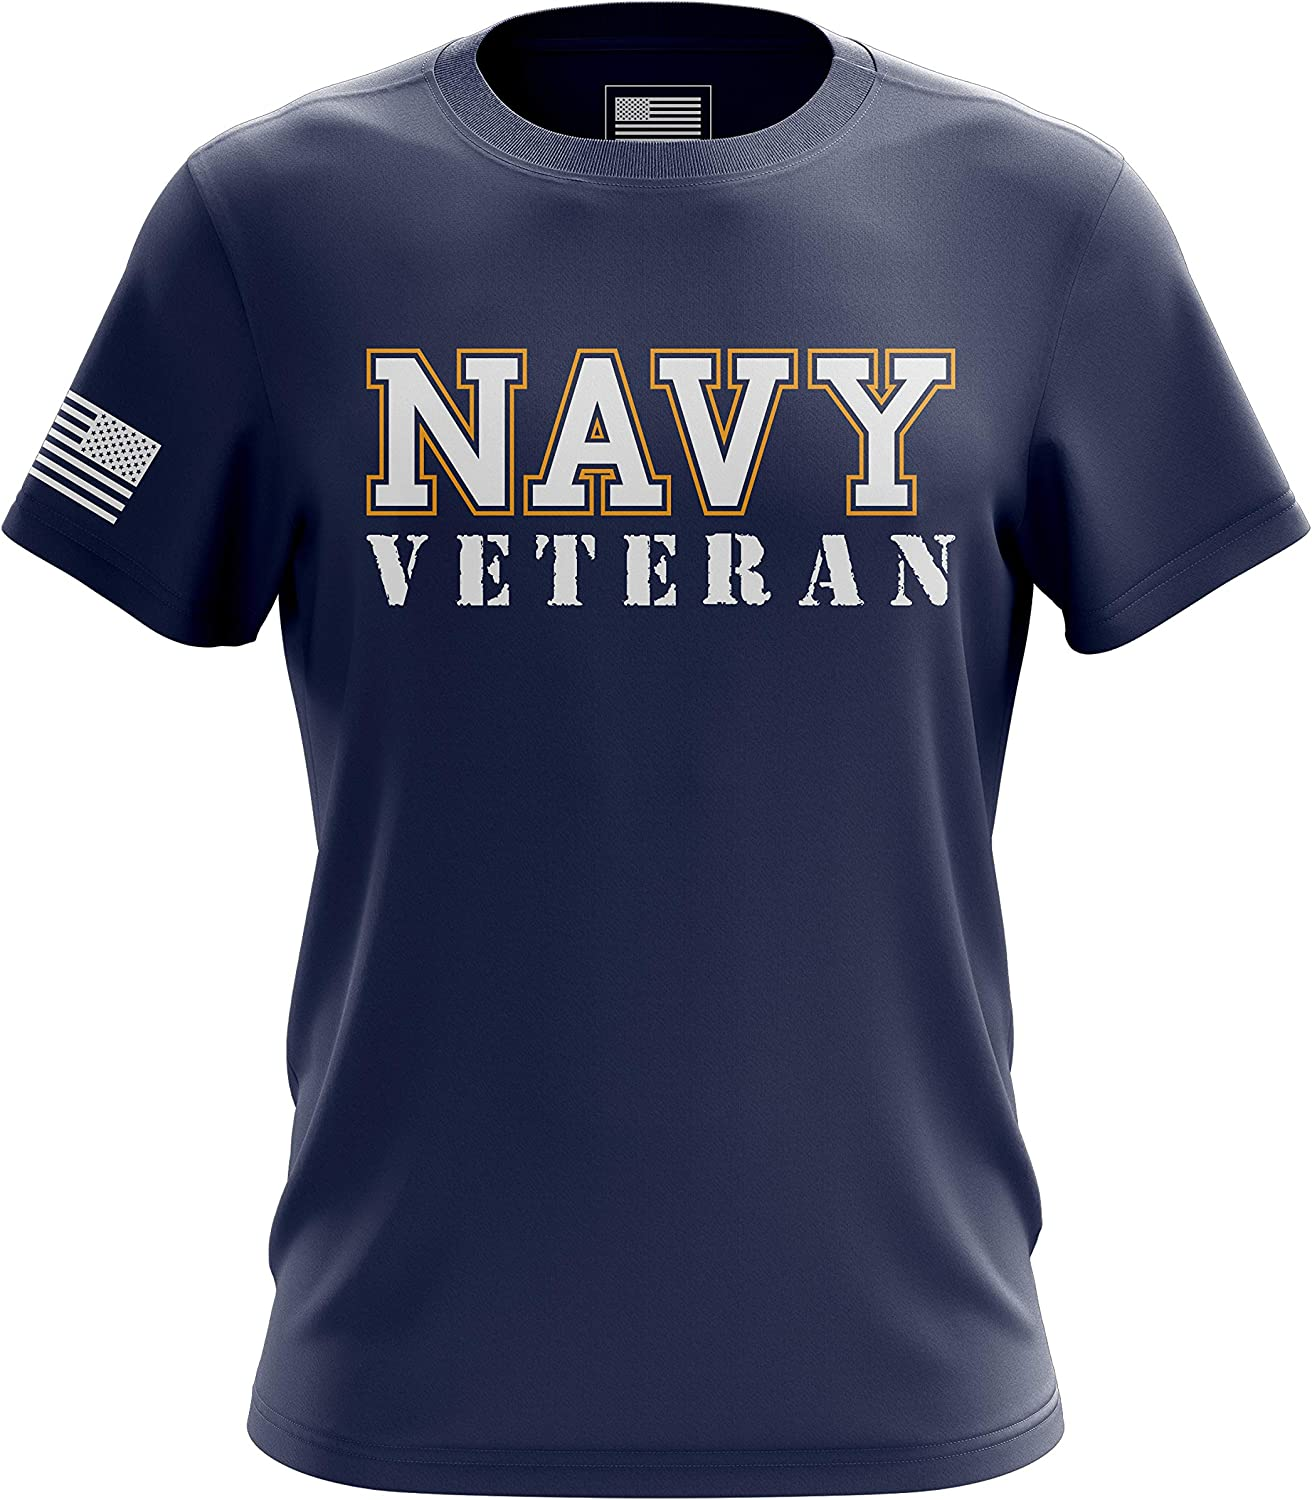 US Navy Veteran American Printed & Packaged in The USA Mens T-Shirt